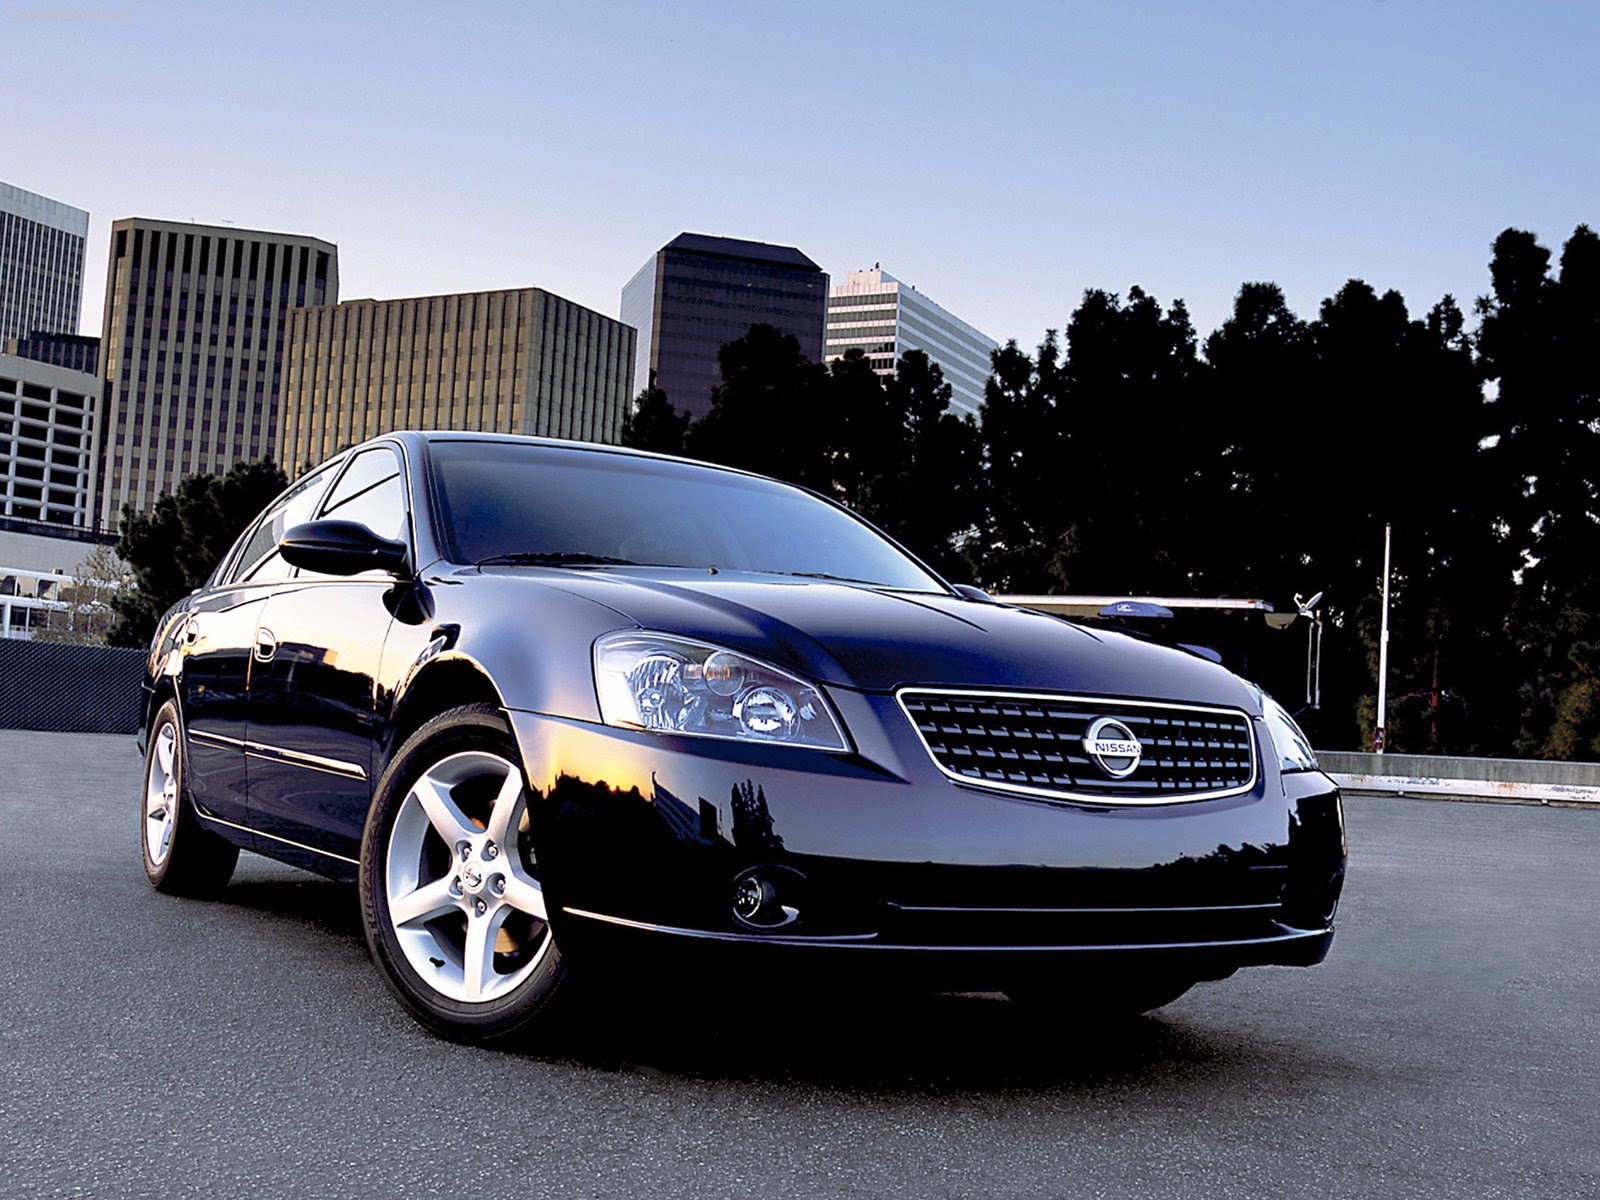 http://www.crazywallpapers.in/2014/03/nissan-altima-best-amazing-wallpapers.html